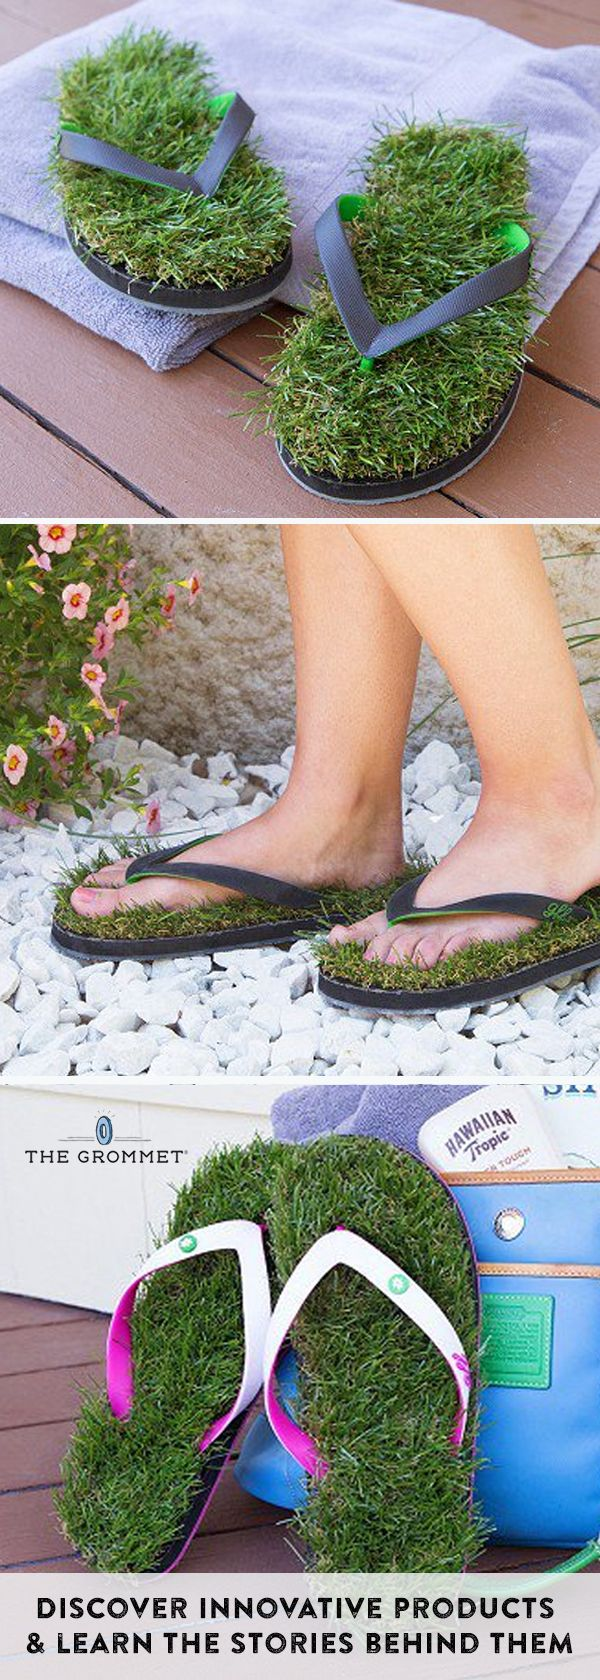 Take a stroll through the grass, even if you're on pavement. Flip flops lined with soft faux turf bring that same summery feeling wherever you go.  Discover innovative products and learn the stories behind them on The Grommet.